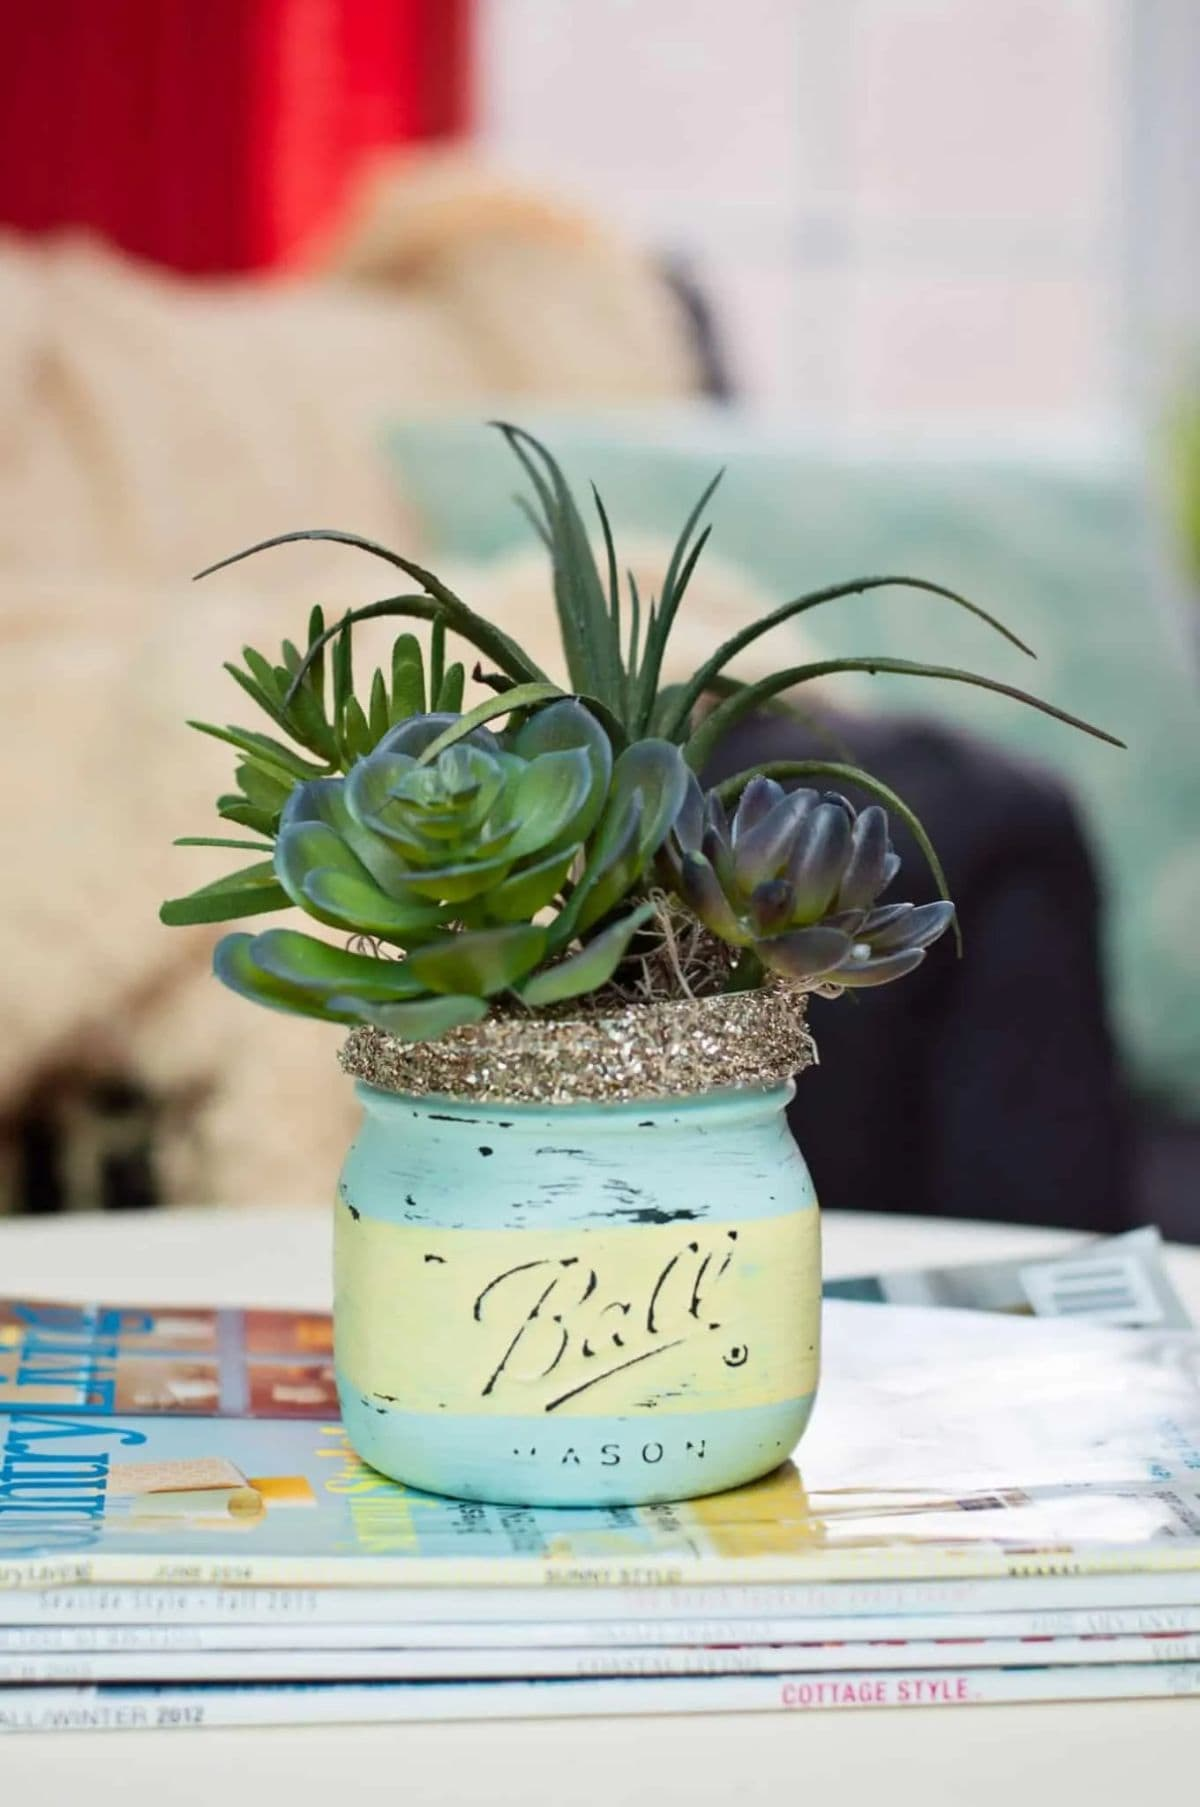 A mason jar painted in blue and green stripes sits on a table. It is filled with a succulent plant